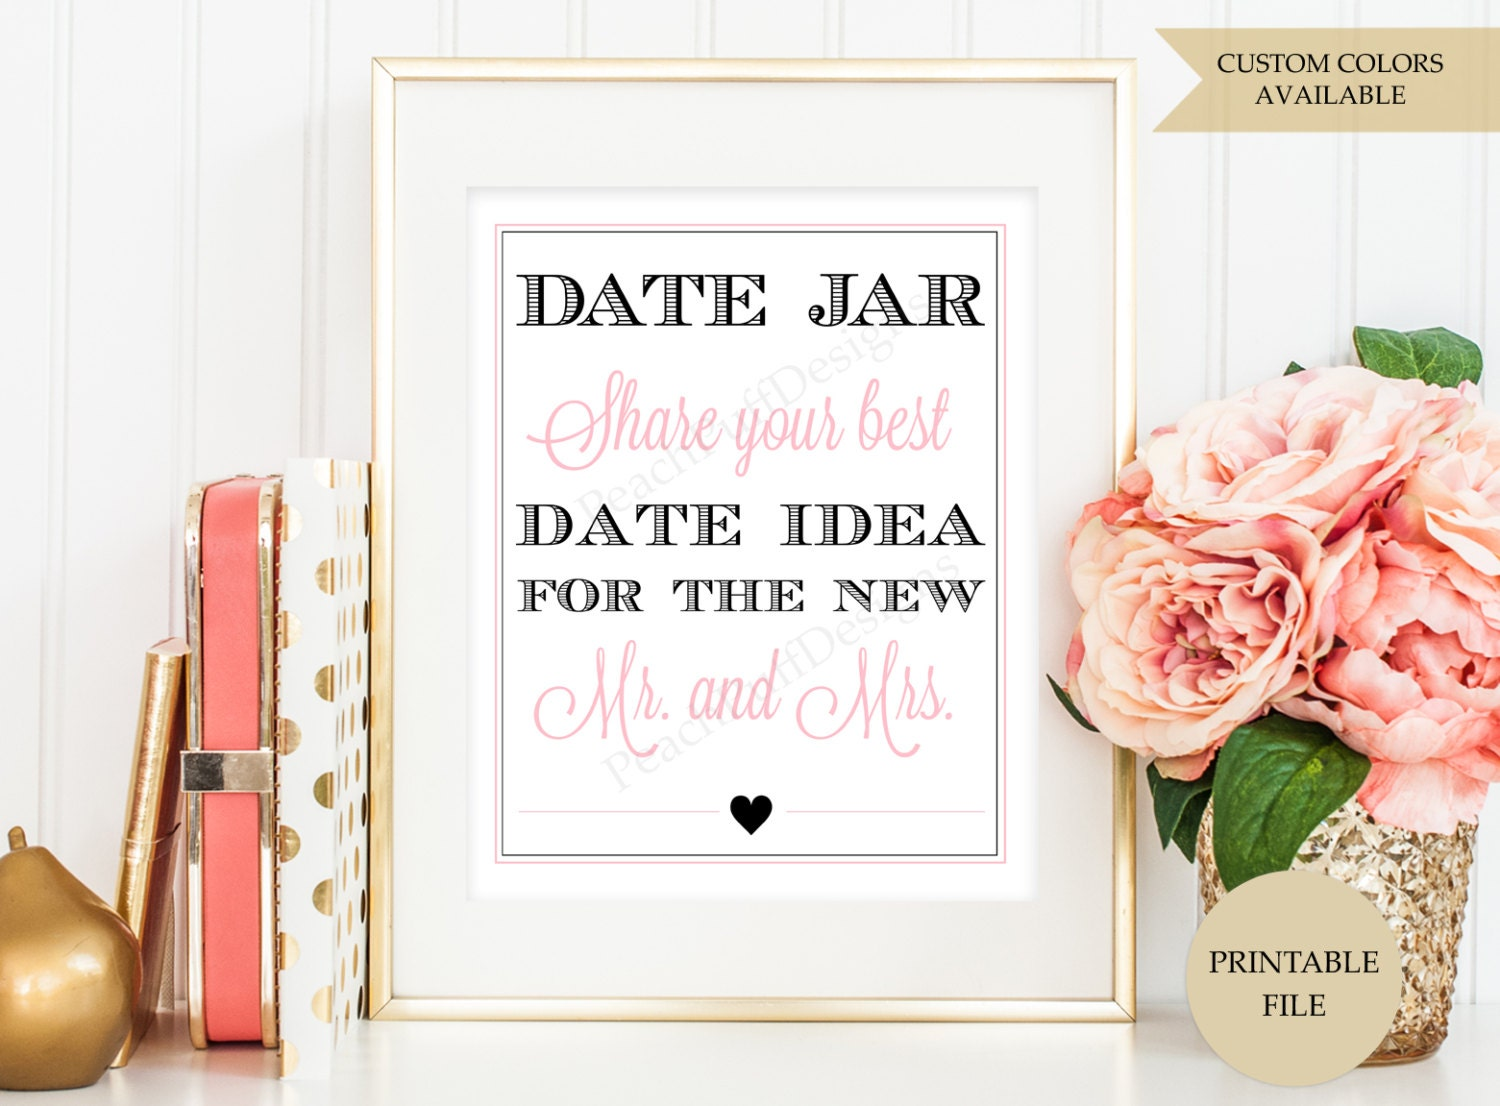 image about Date Night Jar Printable named Day Evening Jar Printable Signal Drama